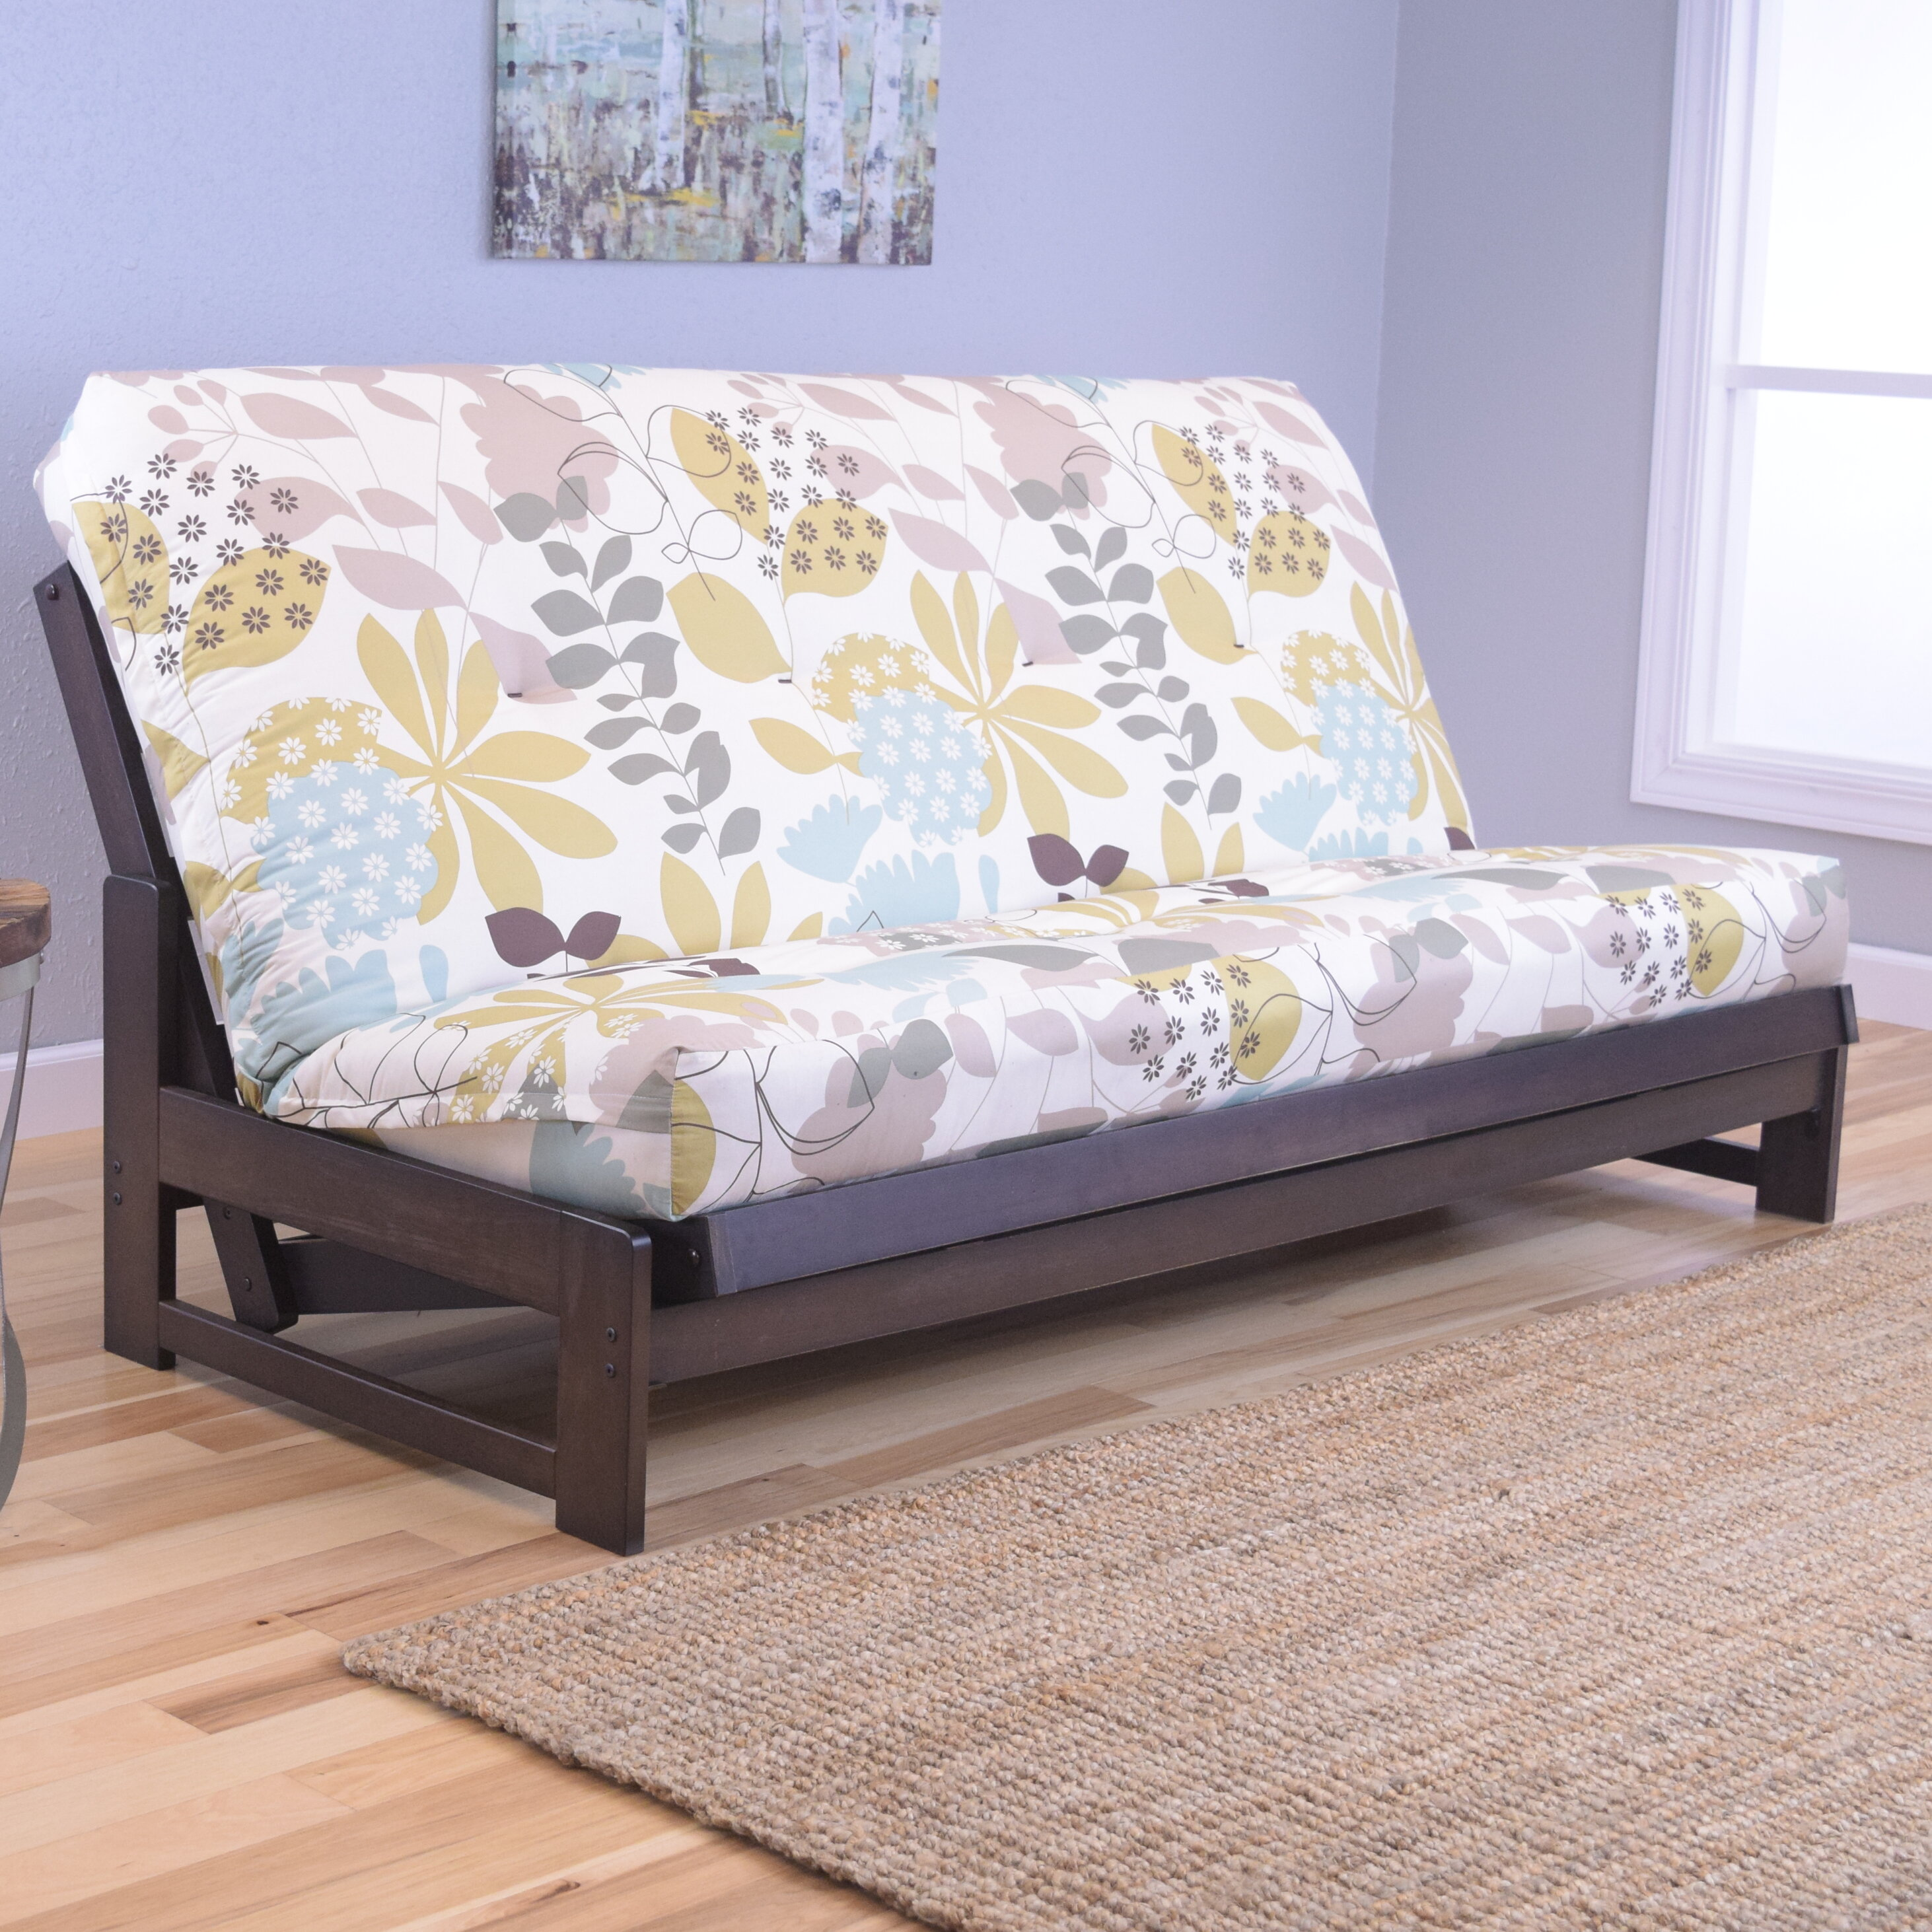 america product garden futons home futon expandable markes extra convertible furniture shipping of free long overstock sofa today grey